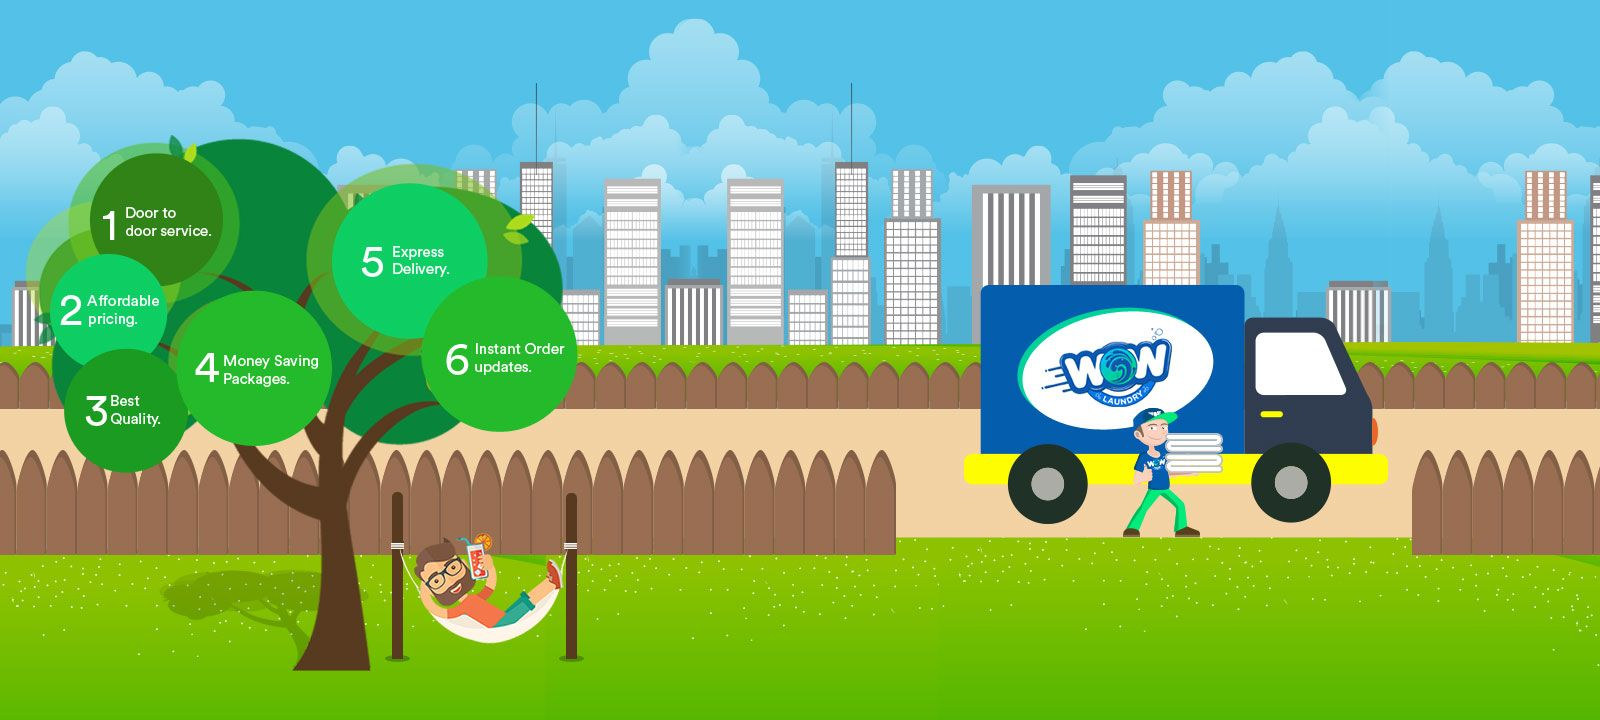 Wow Laundry Provides Online Laundry Service In